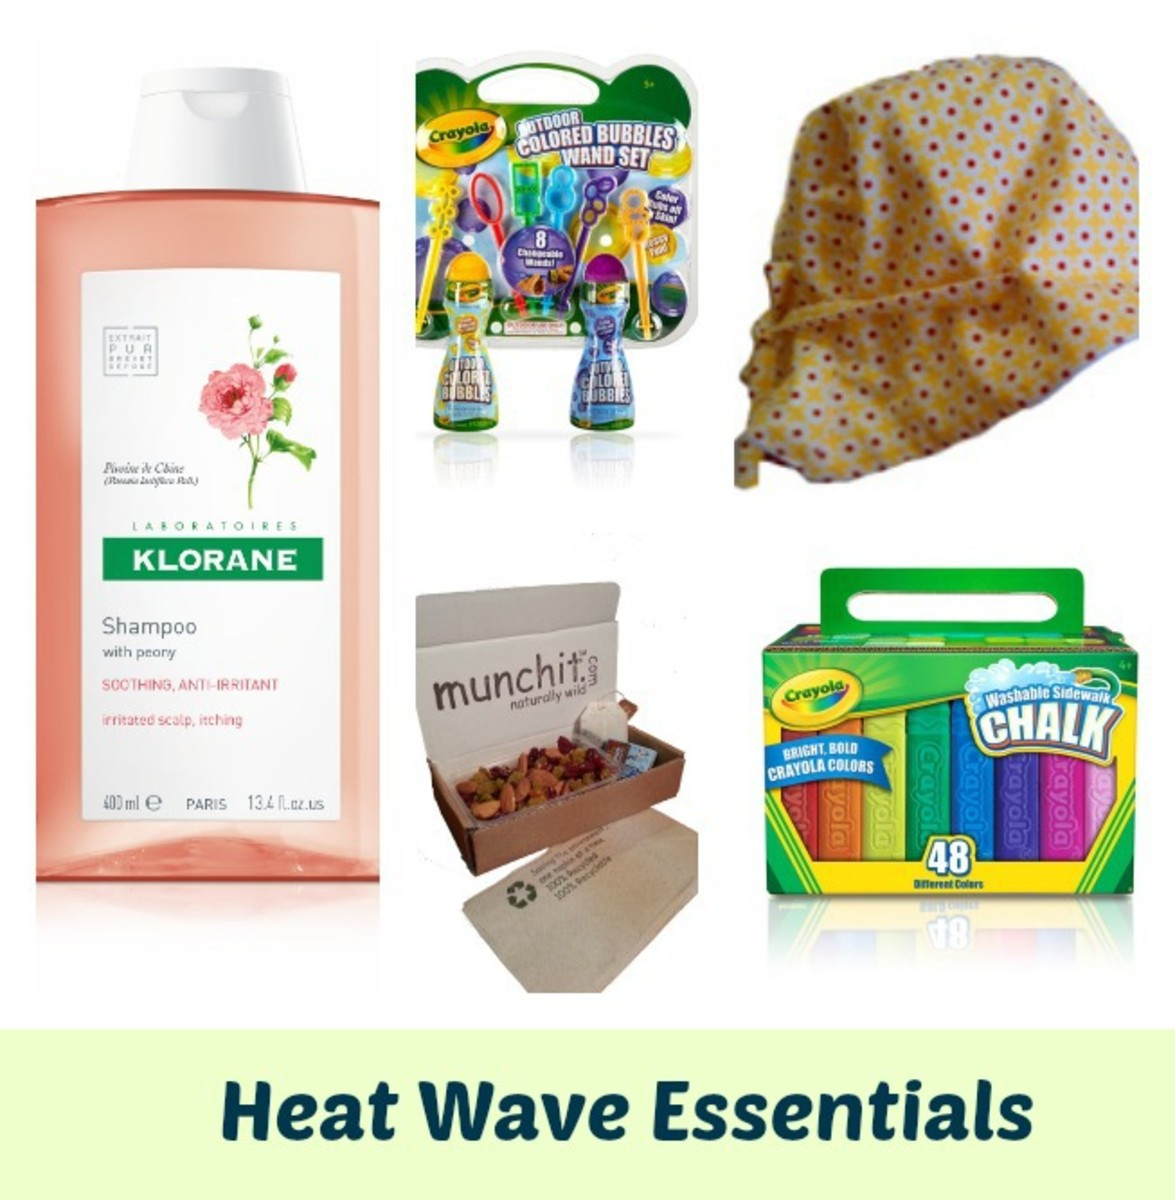 HeatWave Essentials, momtrends